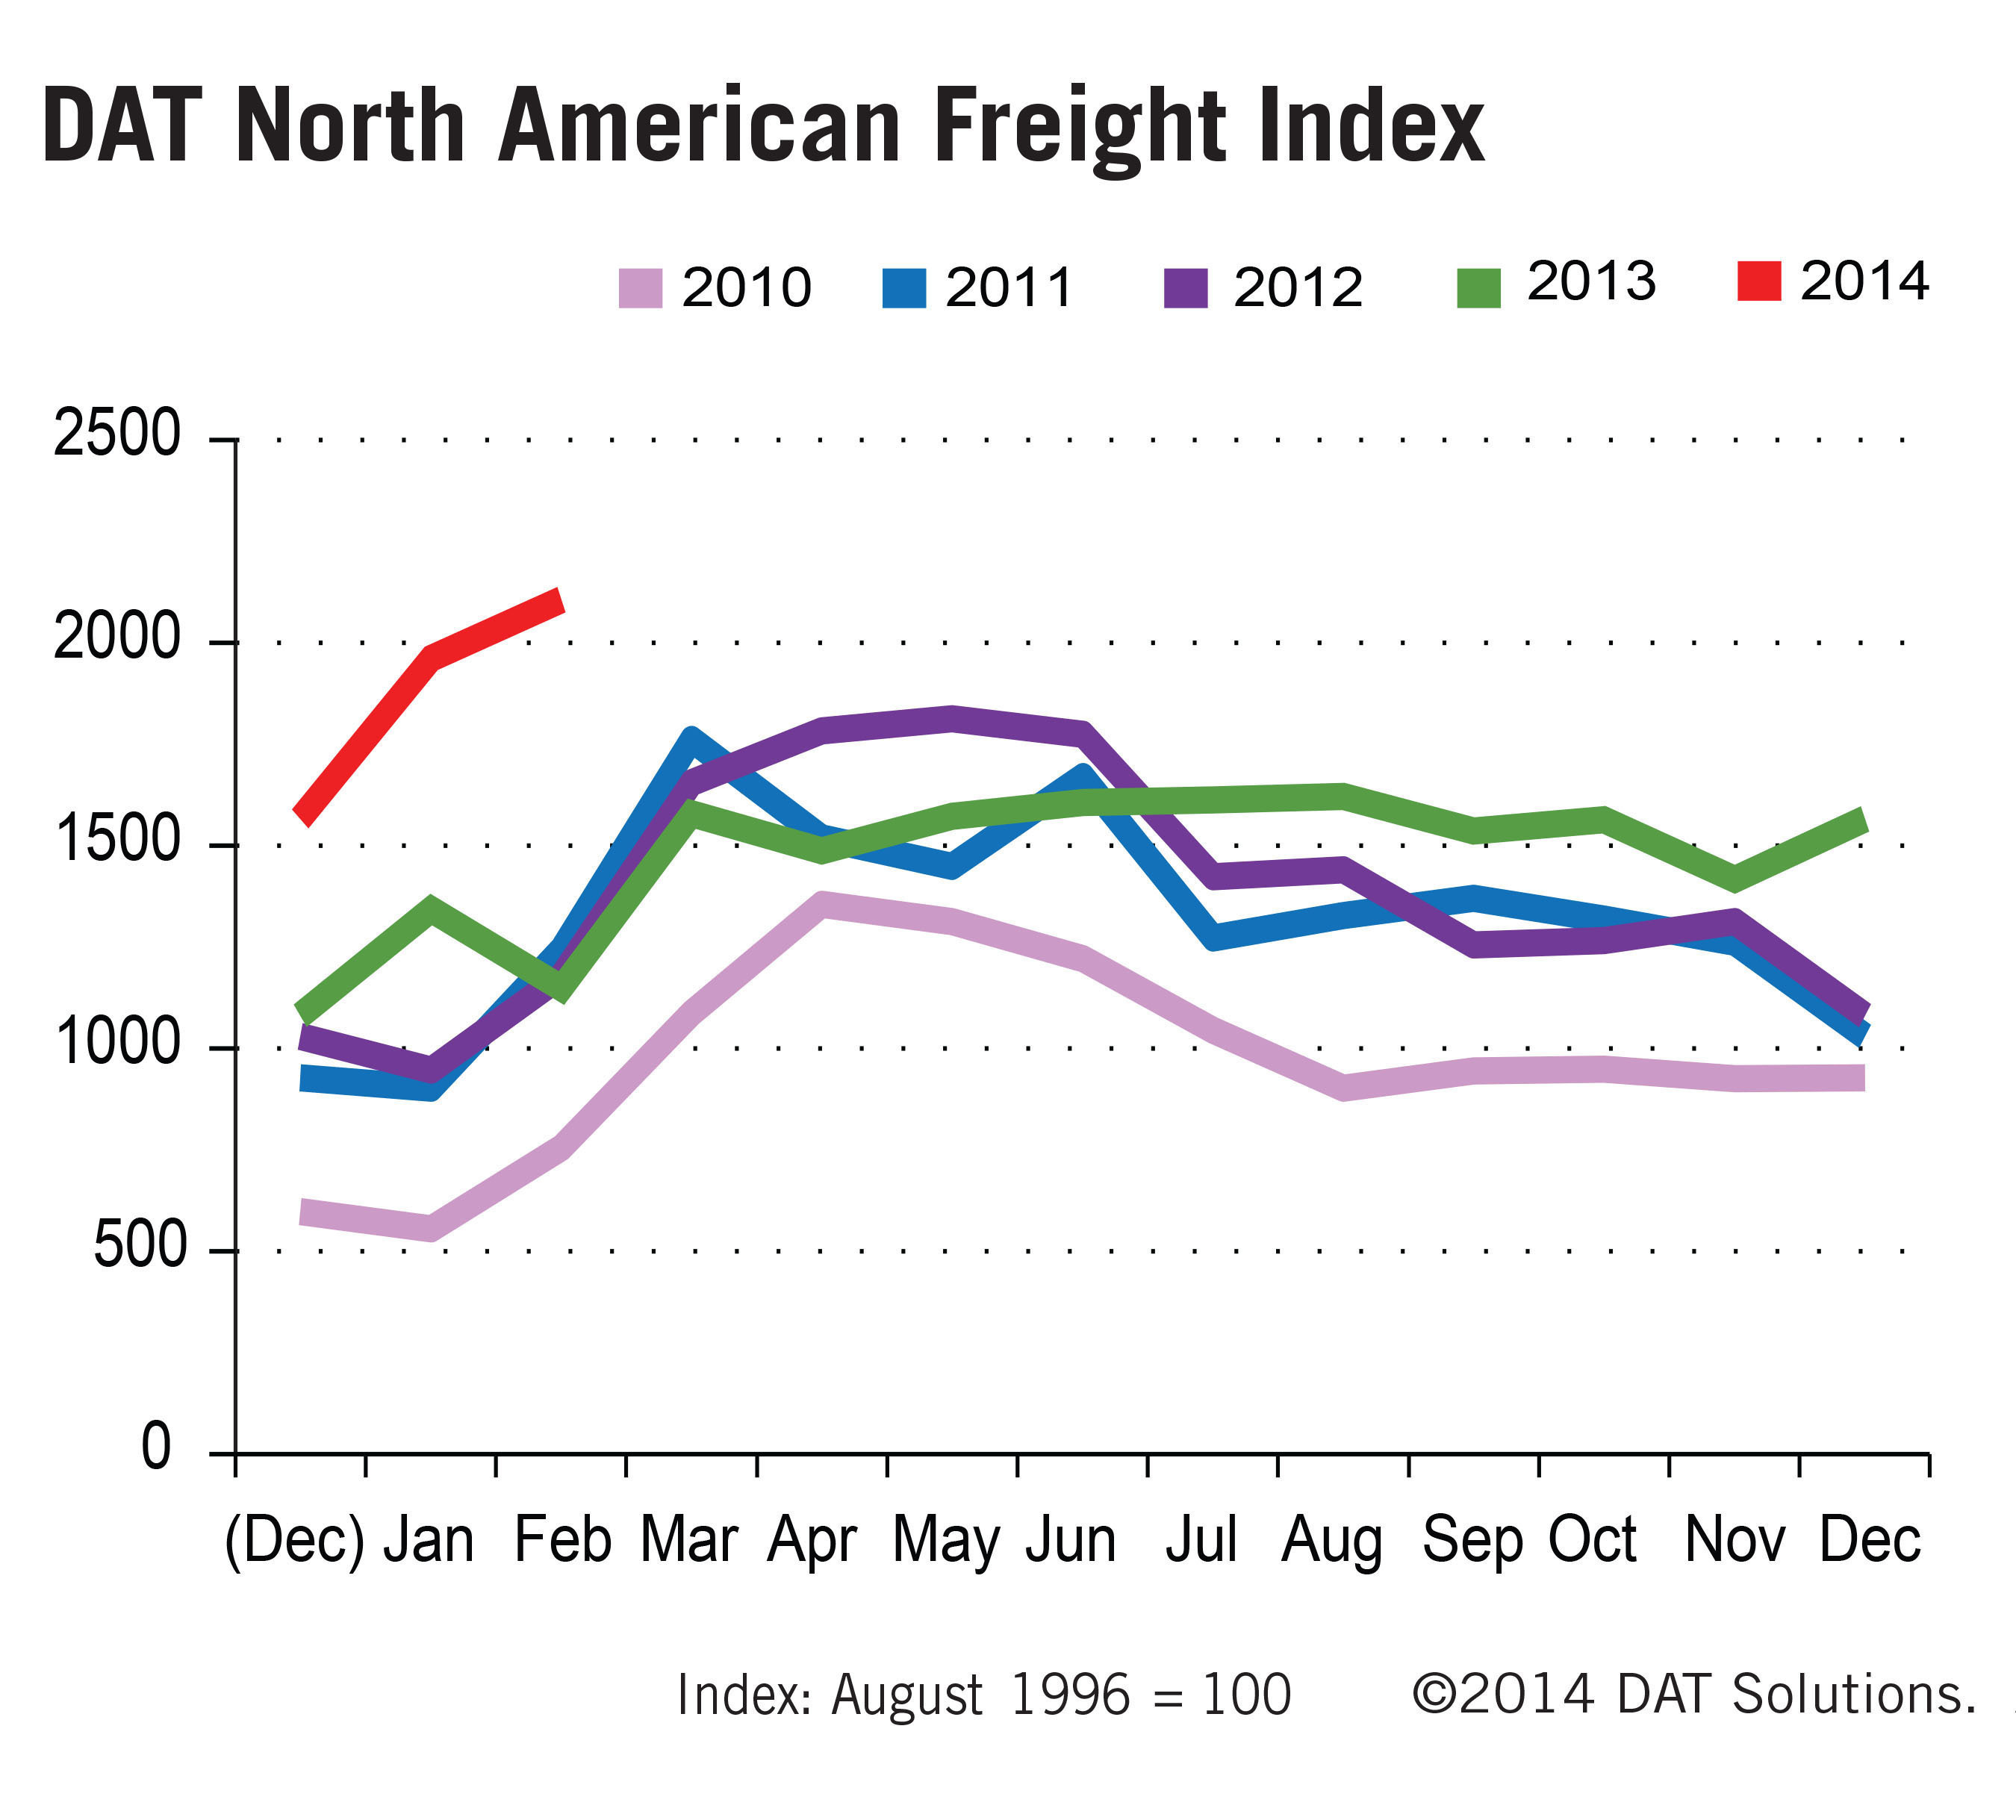 DAT North American Freight Index Reports Weather Drives Up Spot Market Freight Volumes to Record Highs. (PRNewsFoto/DAT Solutions) (PRNewsFoto/DAT SOLUTIONS)